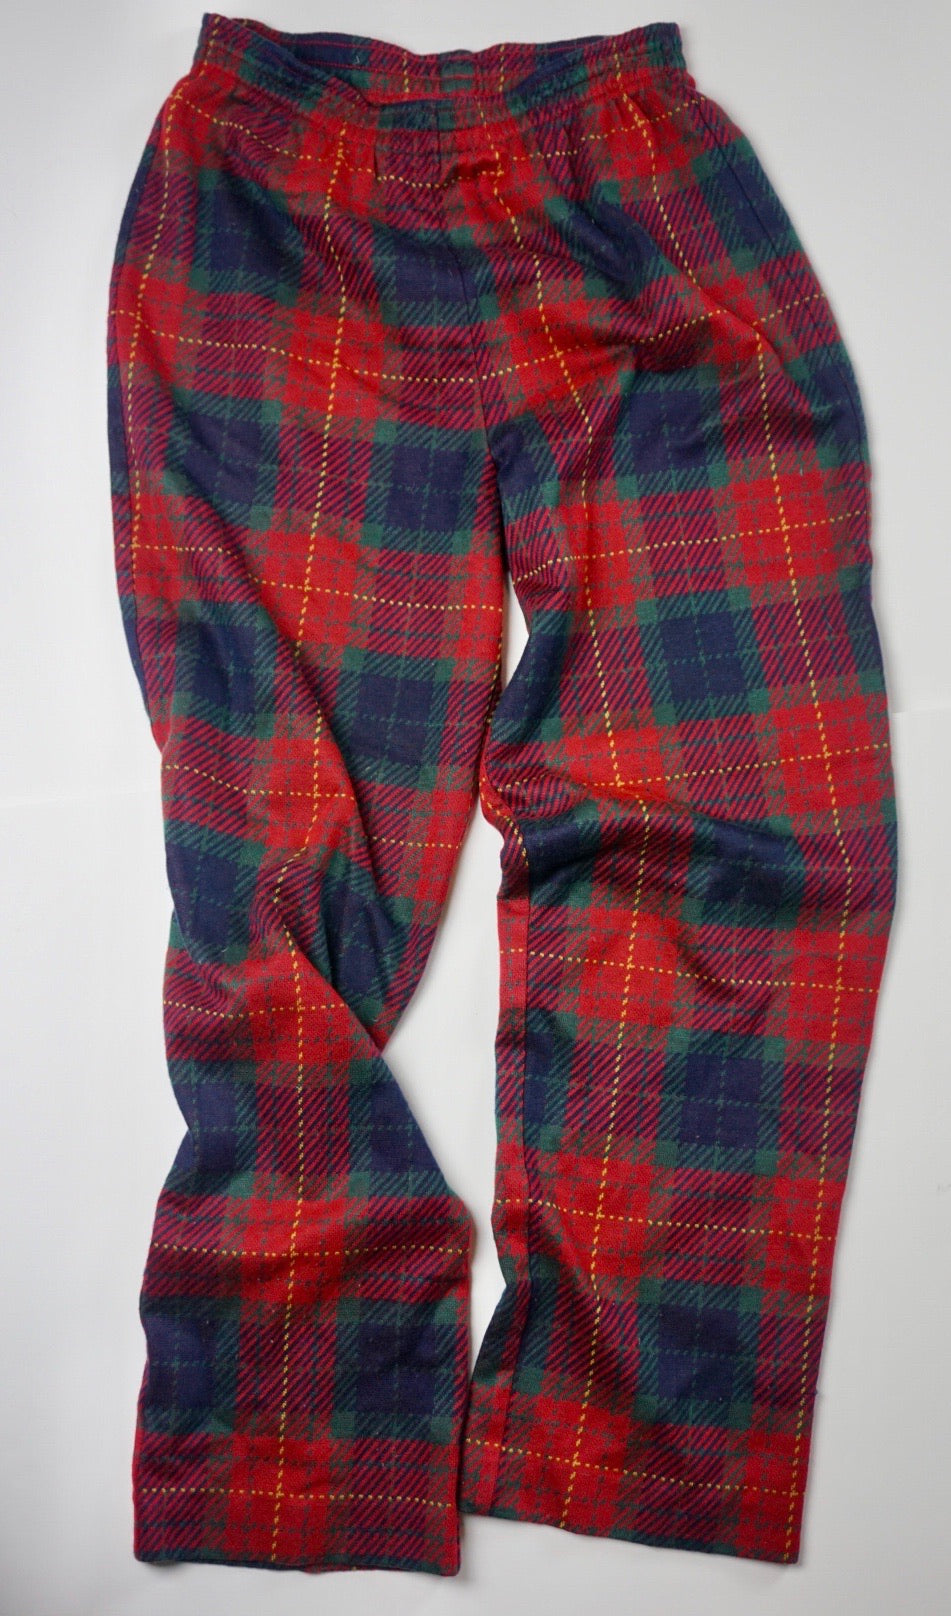 KNIT PLAID ELASTIC WAIST PANTS